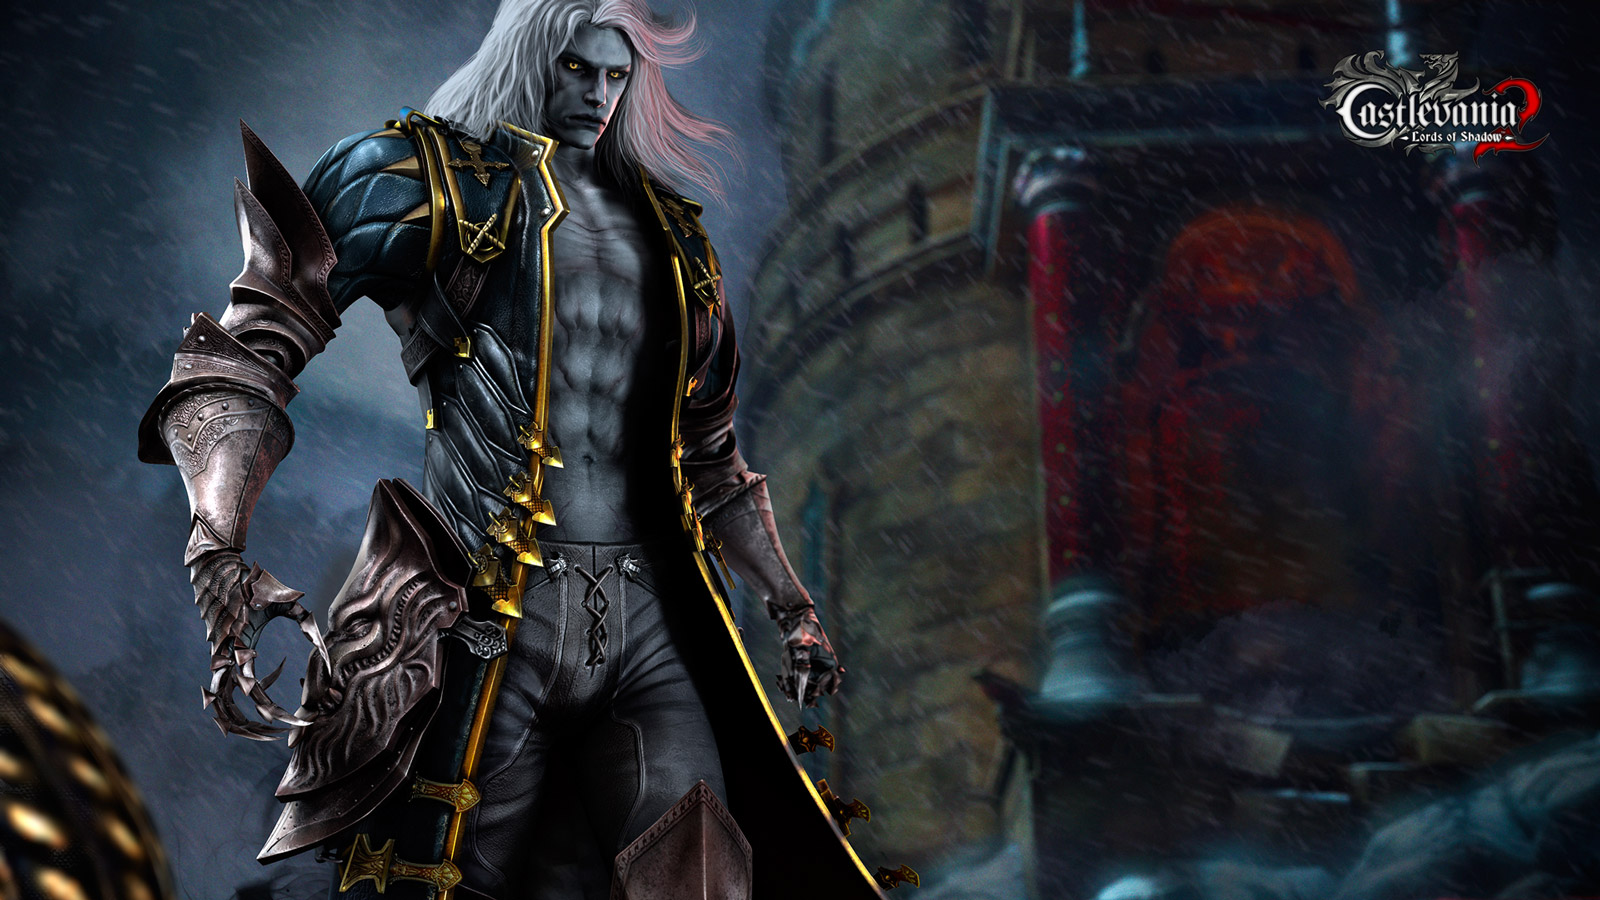 Free Castlevania: Lords of Shadow 2 Wallpaper in 1600x900